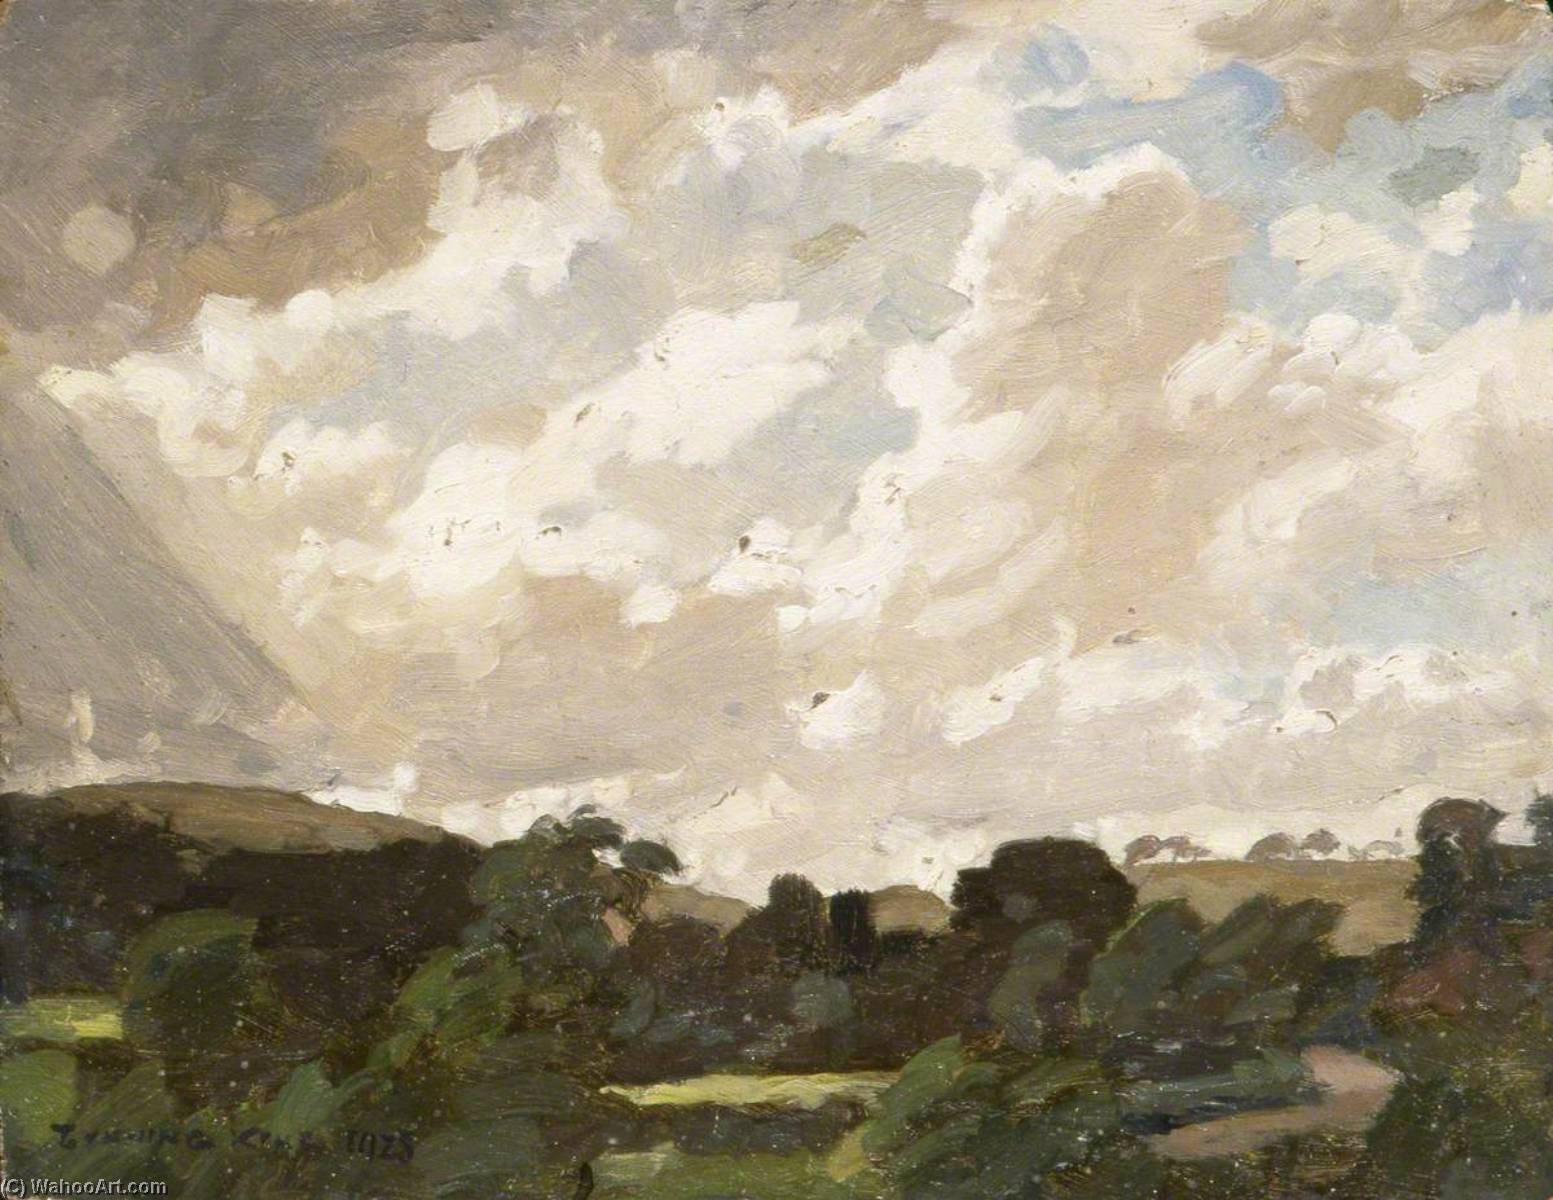 Landscape with Cloudy Sky, Oil by Gunning King